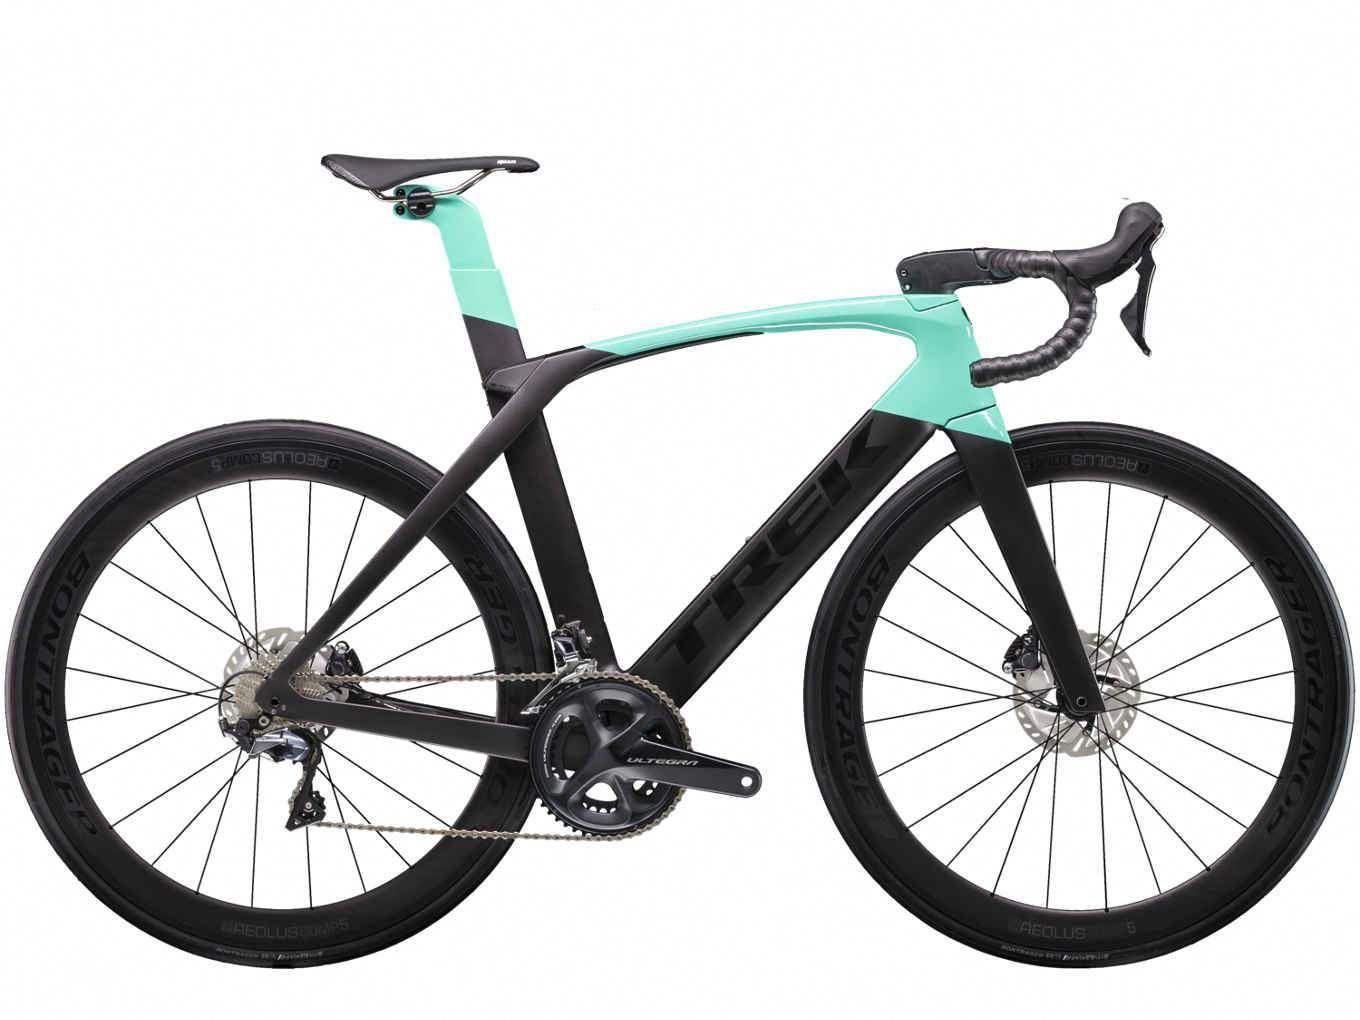 2019 Trek Madone Slr Disc Women S In 2020 Trek Madone Trek